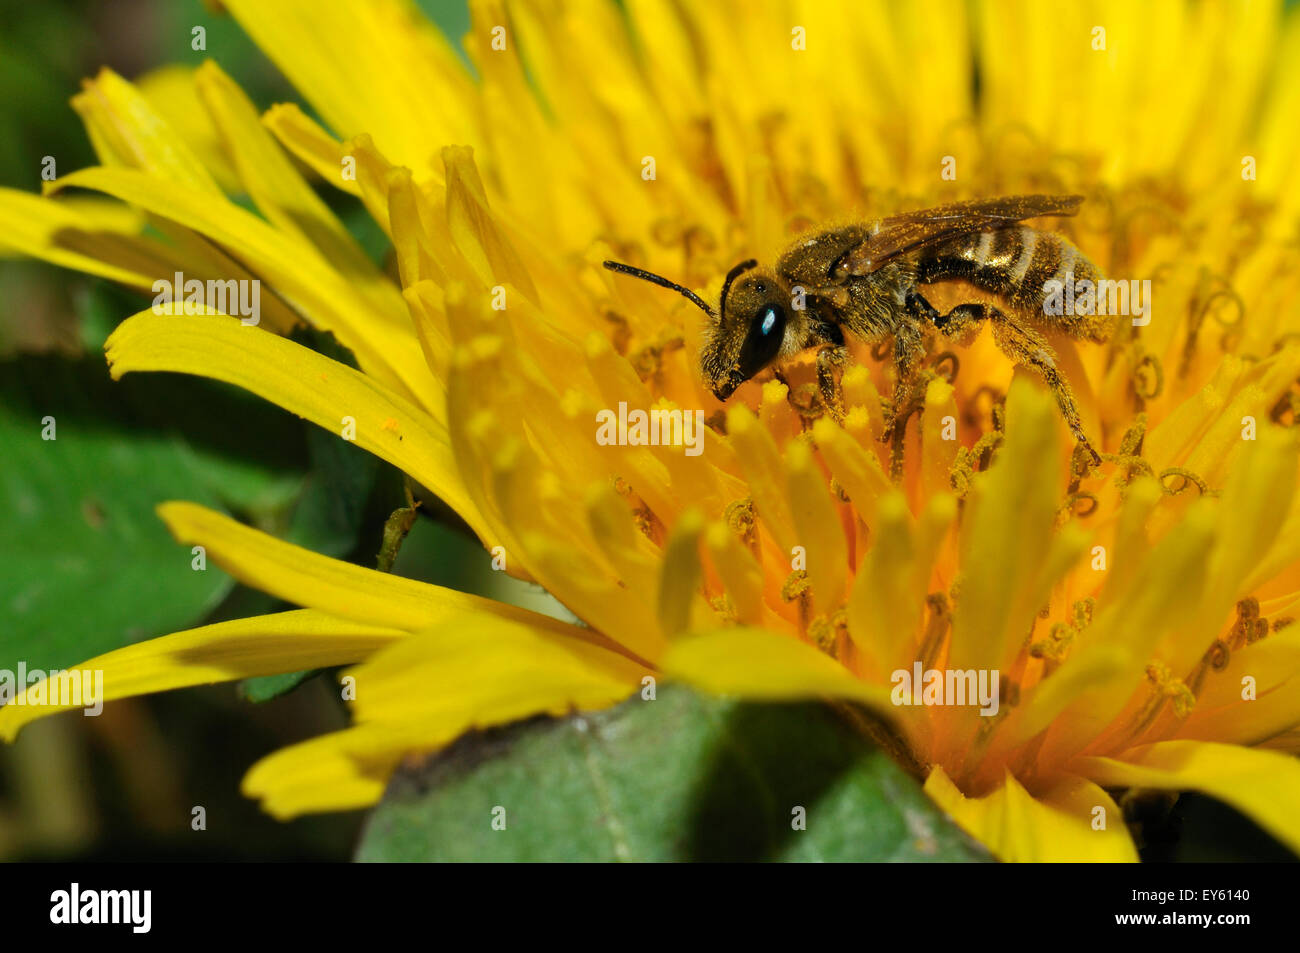 Mining Bee on Dandelion flower - Northern Vosges France - Stock Image